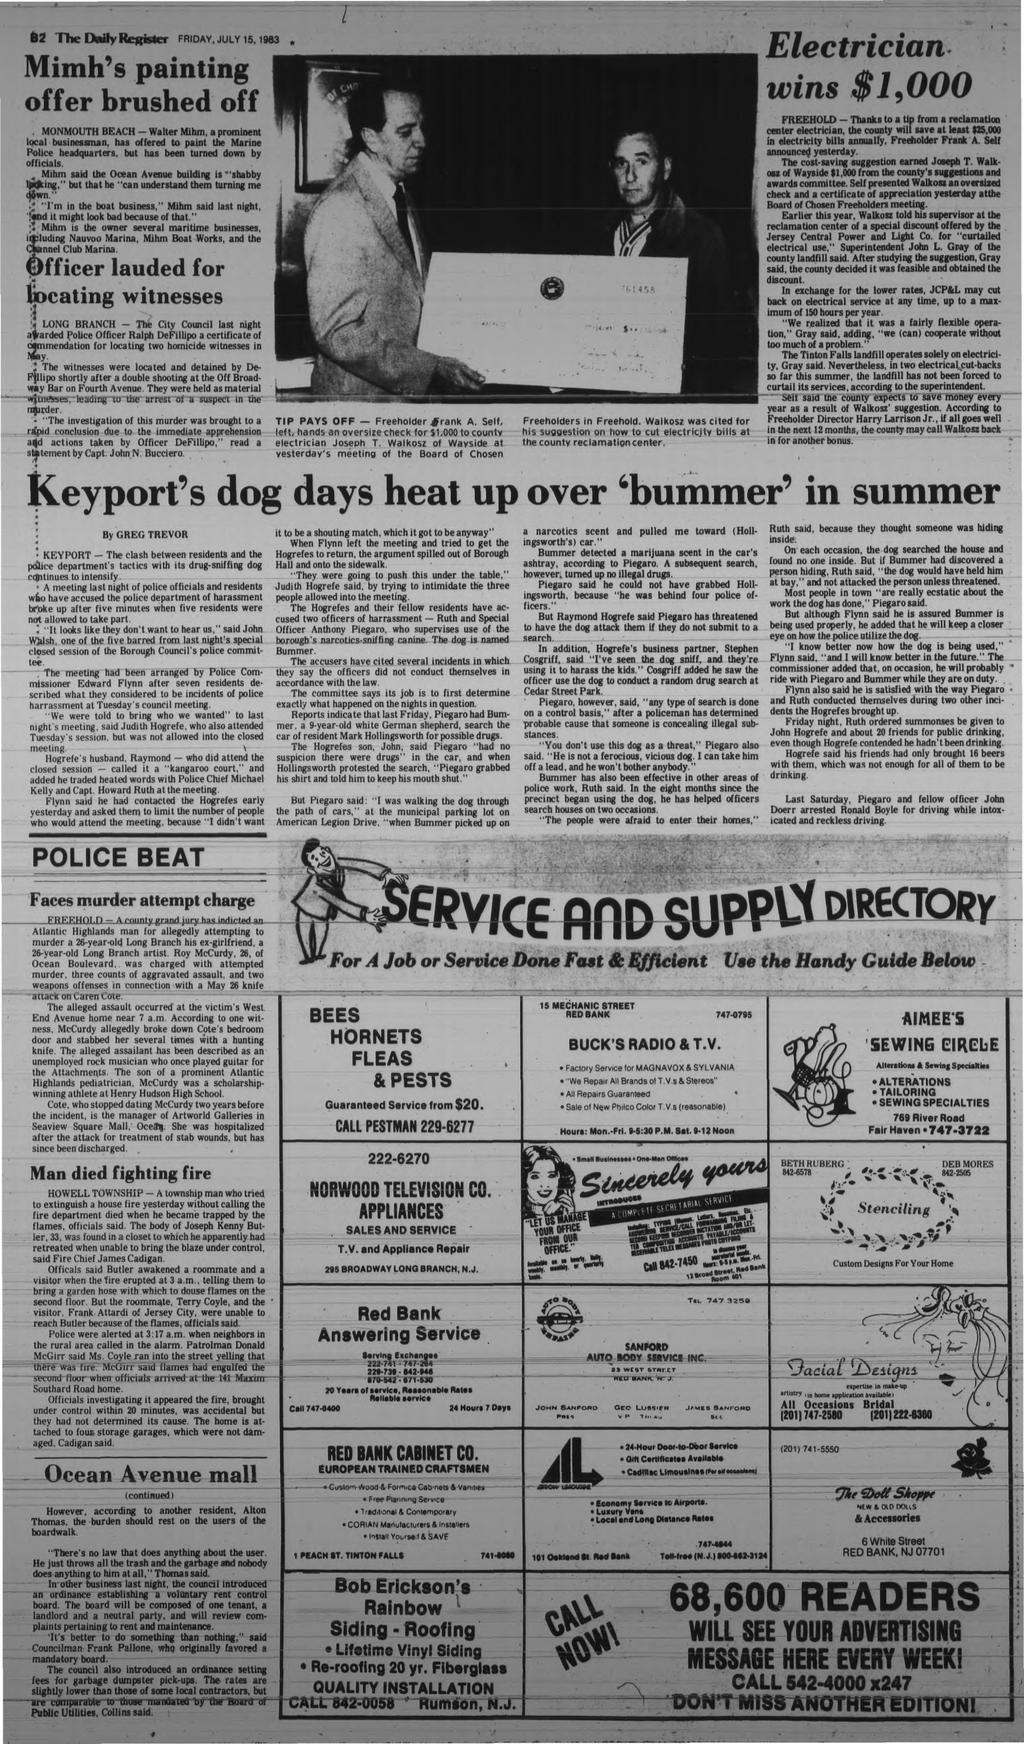 62 The Daily Register FRDAY, JULY is, 963 imh's painting offer brushed off.